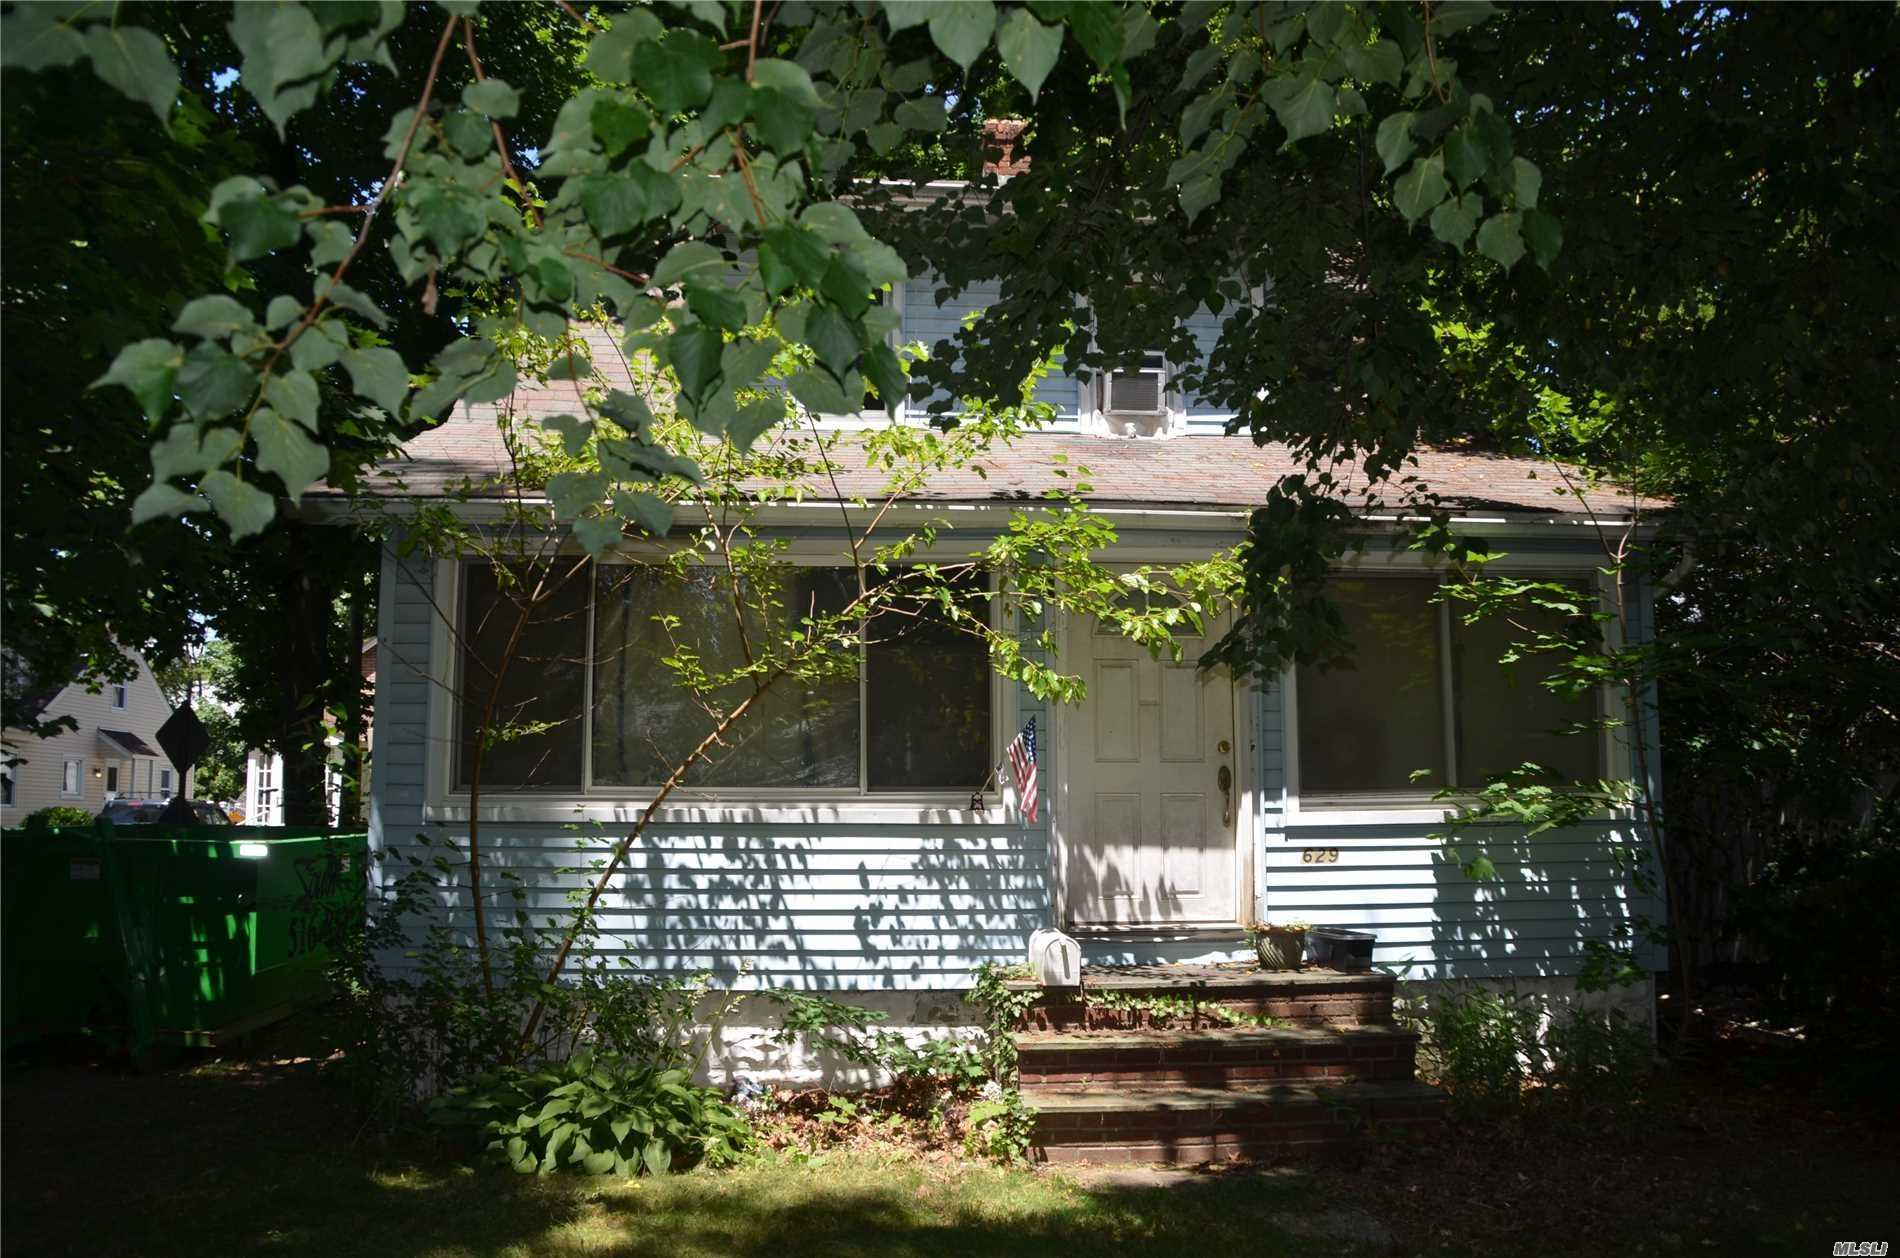 This Home Is Located On A Dead End Street In The Award Winning Plaza Elementary School District, Just Blocks From Lirr And Major Shopping. Bring Your Imagination And Your Broom To Make This Property Shine Once Again. Needs Tlc.